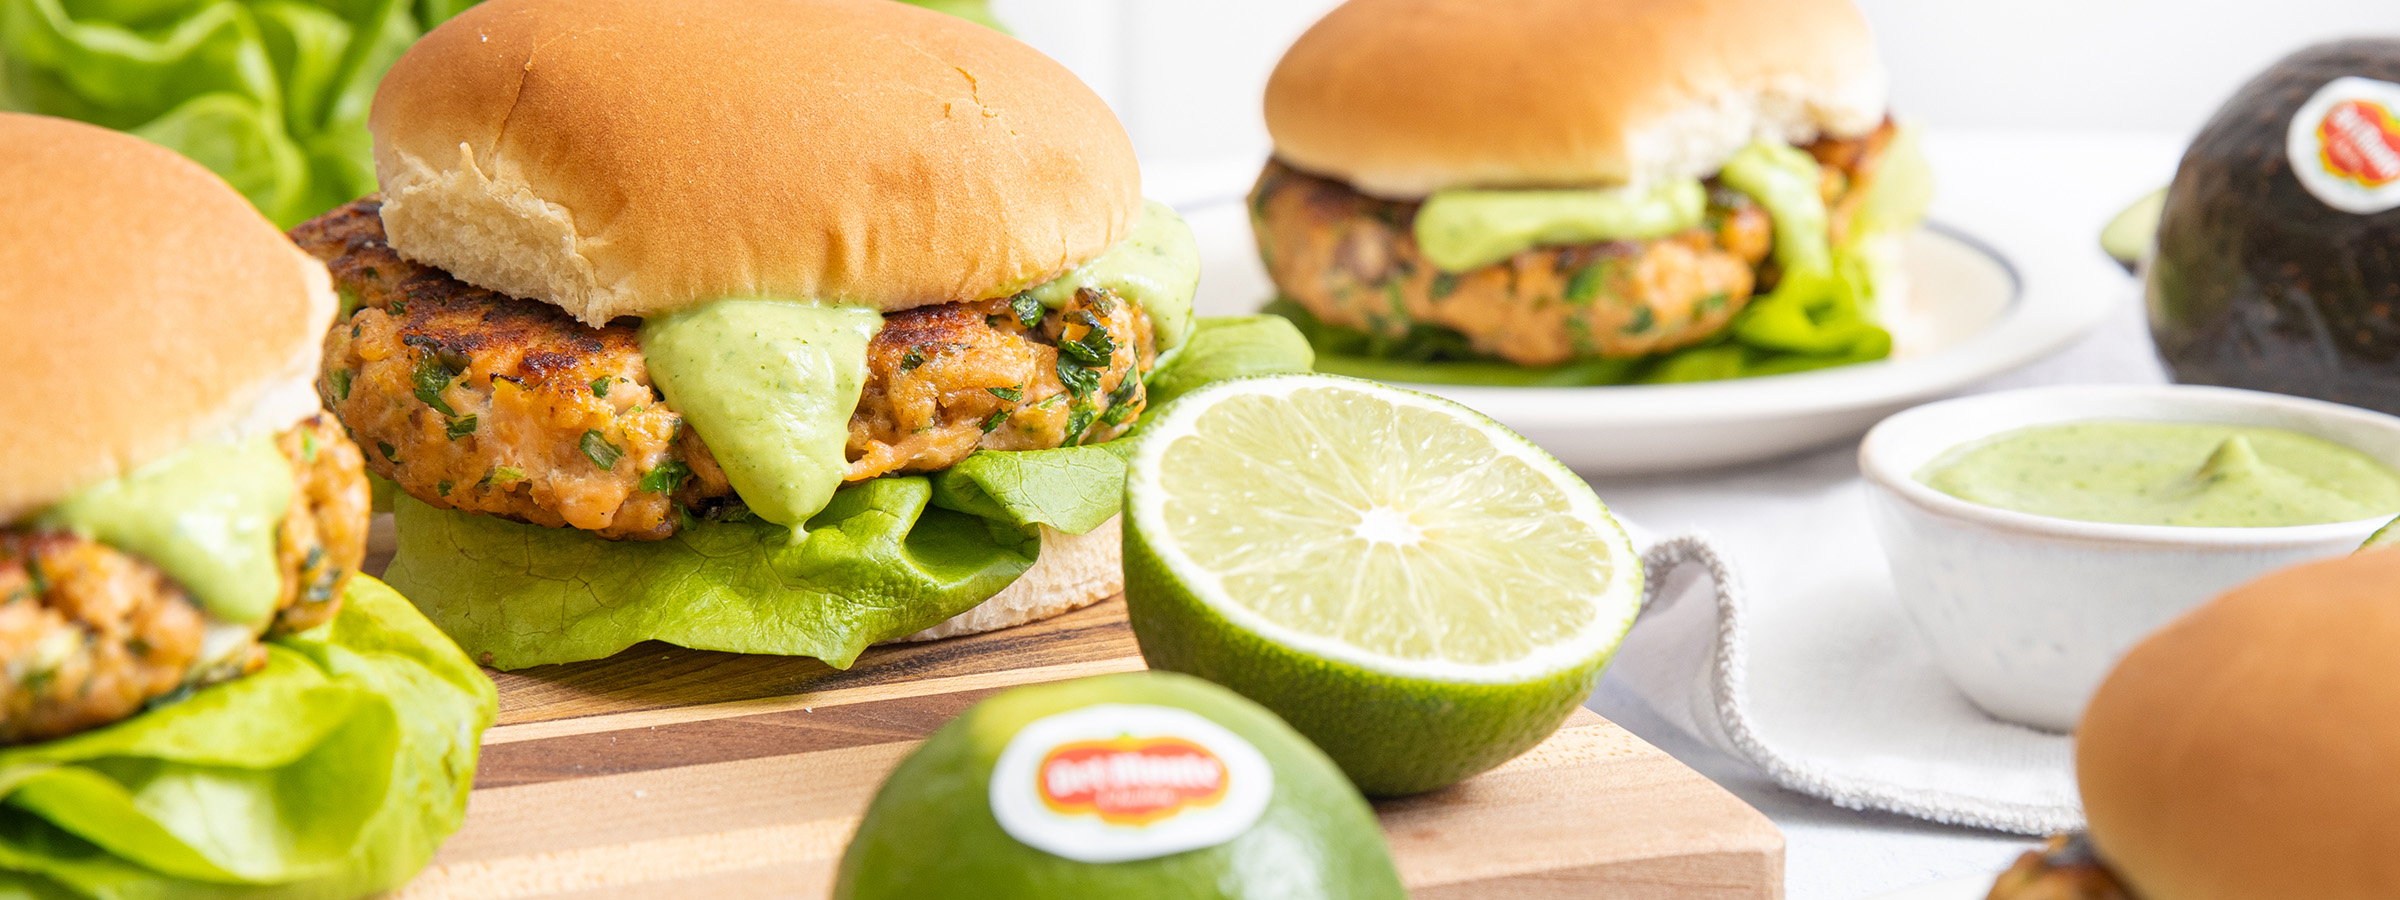 Homepage-Banner_Try-Our-Recipes_Spicy-Salmon-Burger-with-Avocado-Ranch_April-2020